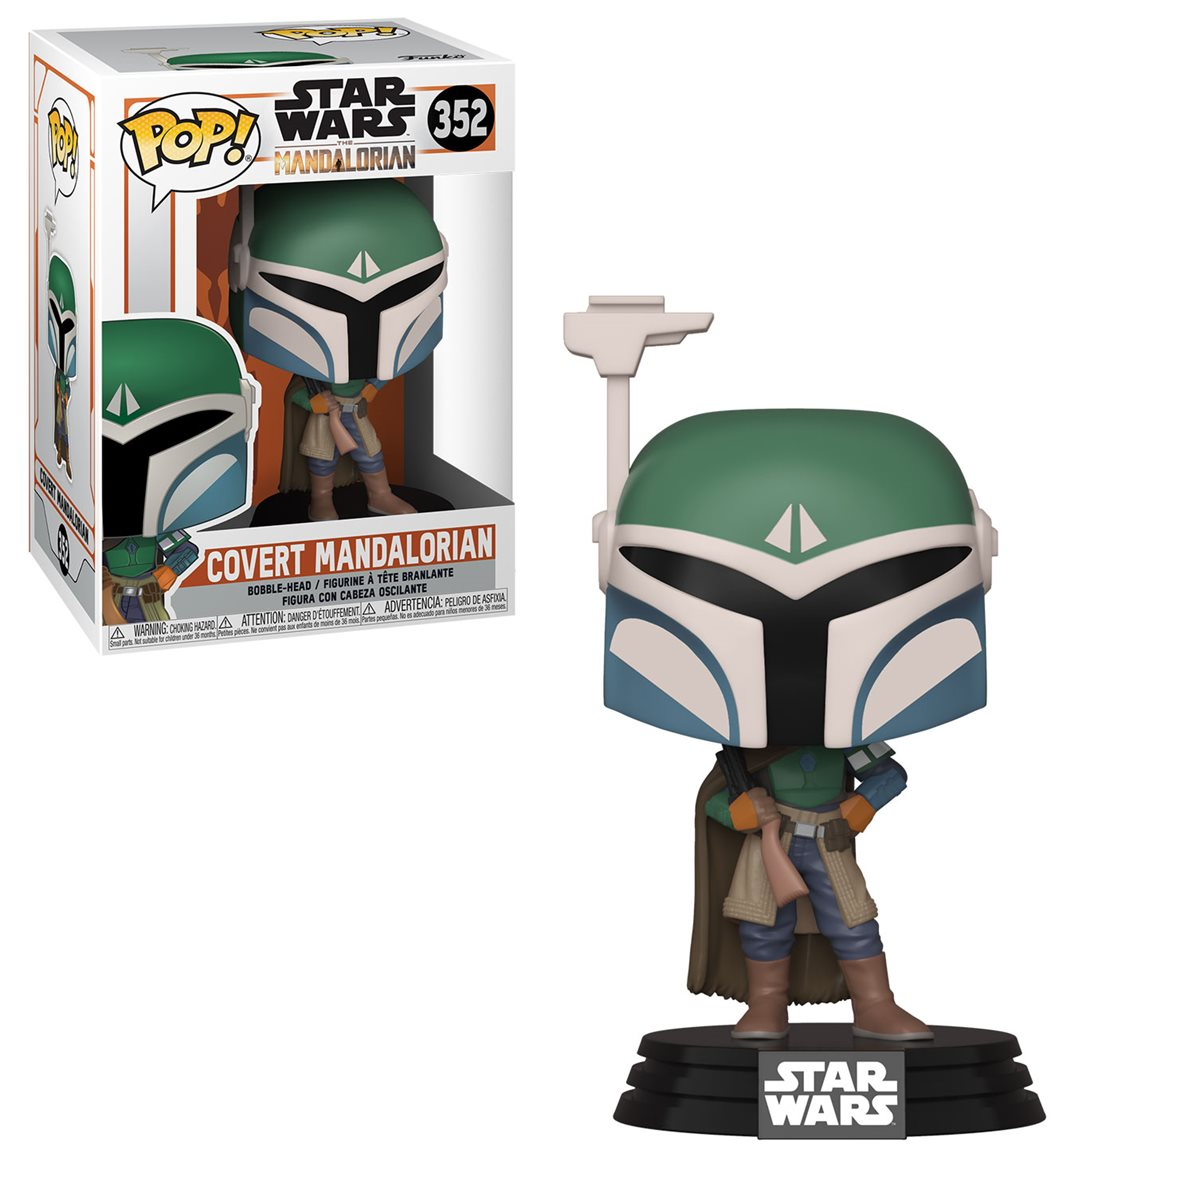 POP! Star Wars 352: Mandalorian - Covert Mandalorian